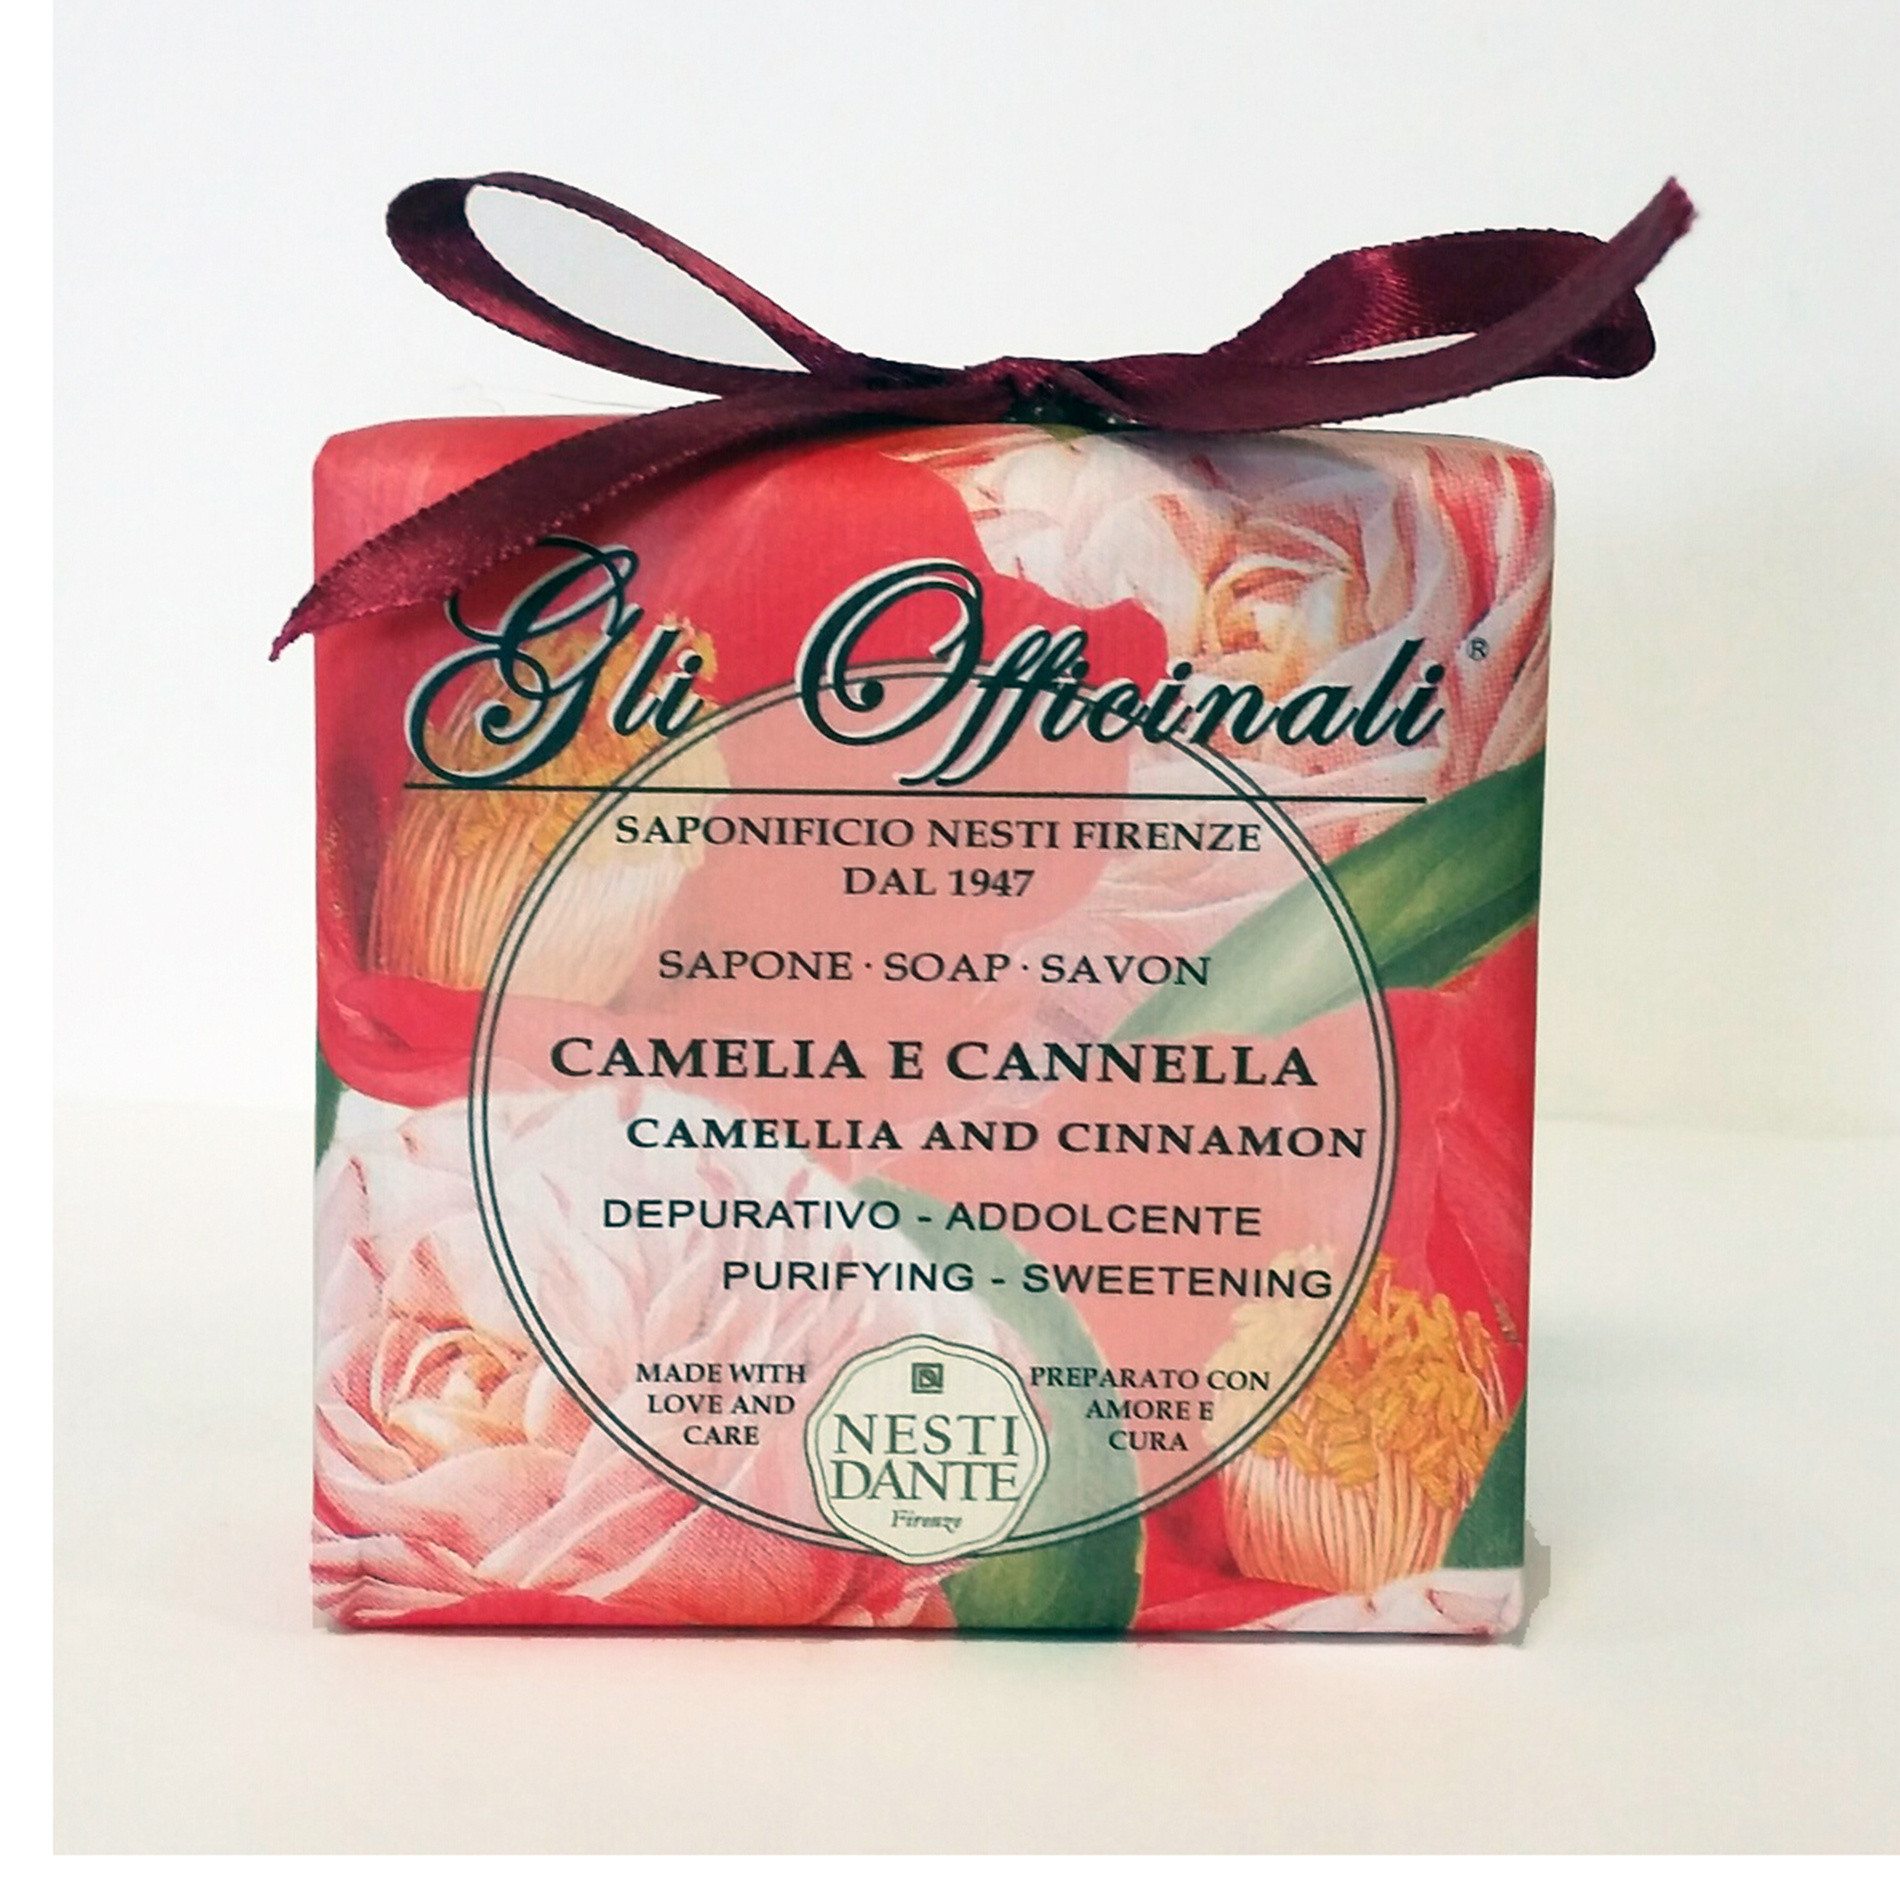 Officinale - Camelia & Cannella, Rosso, large image number 0